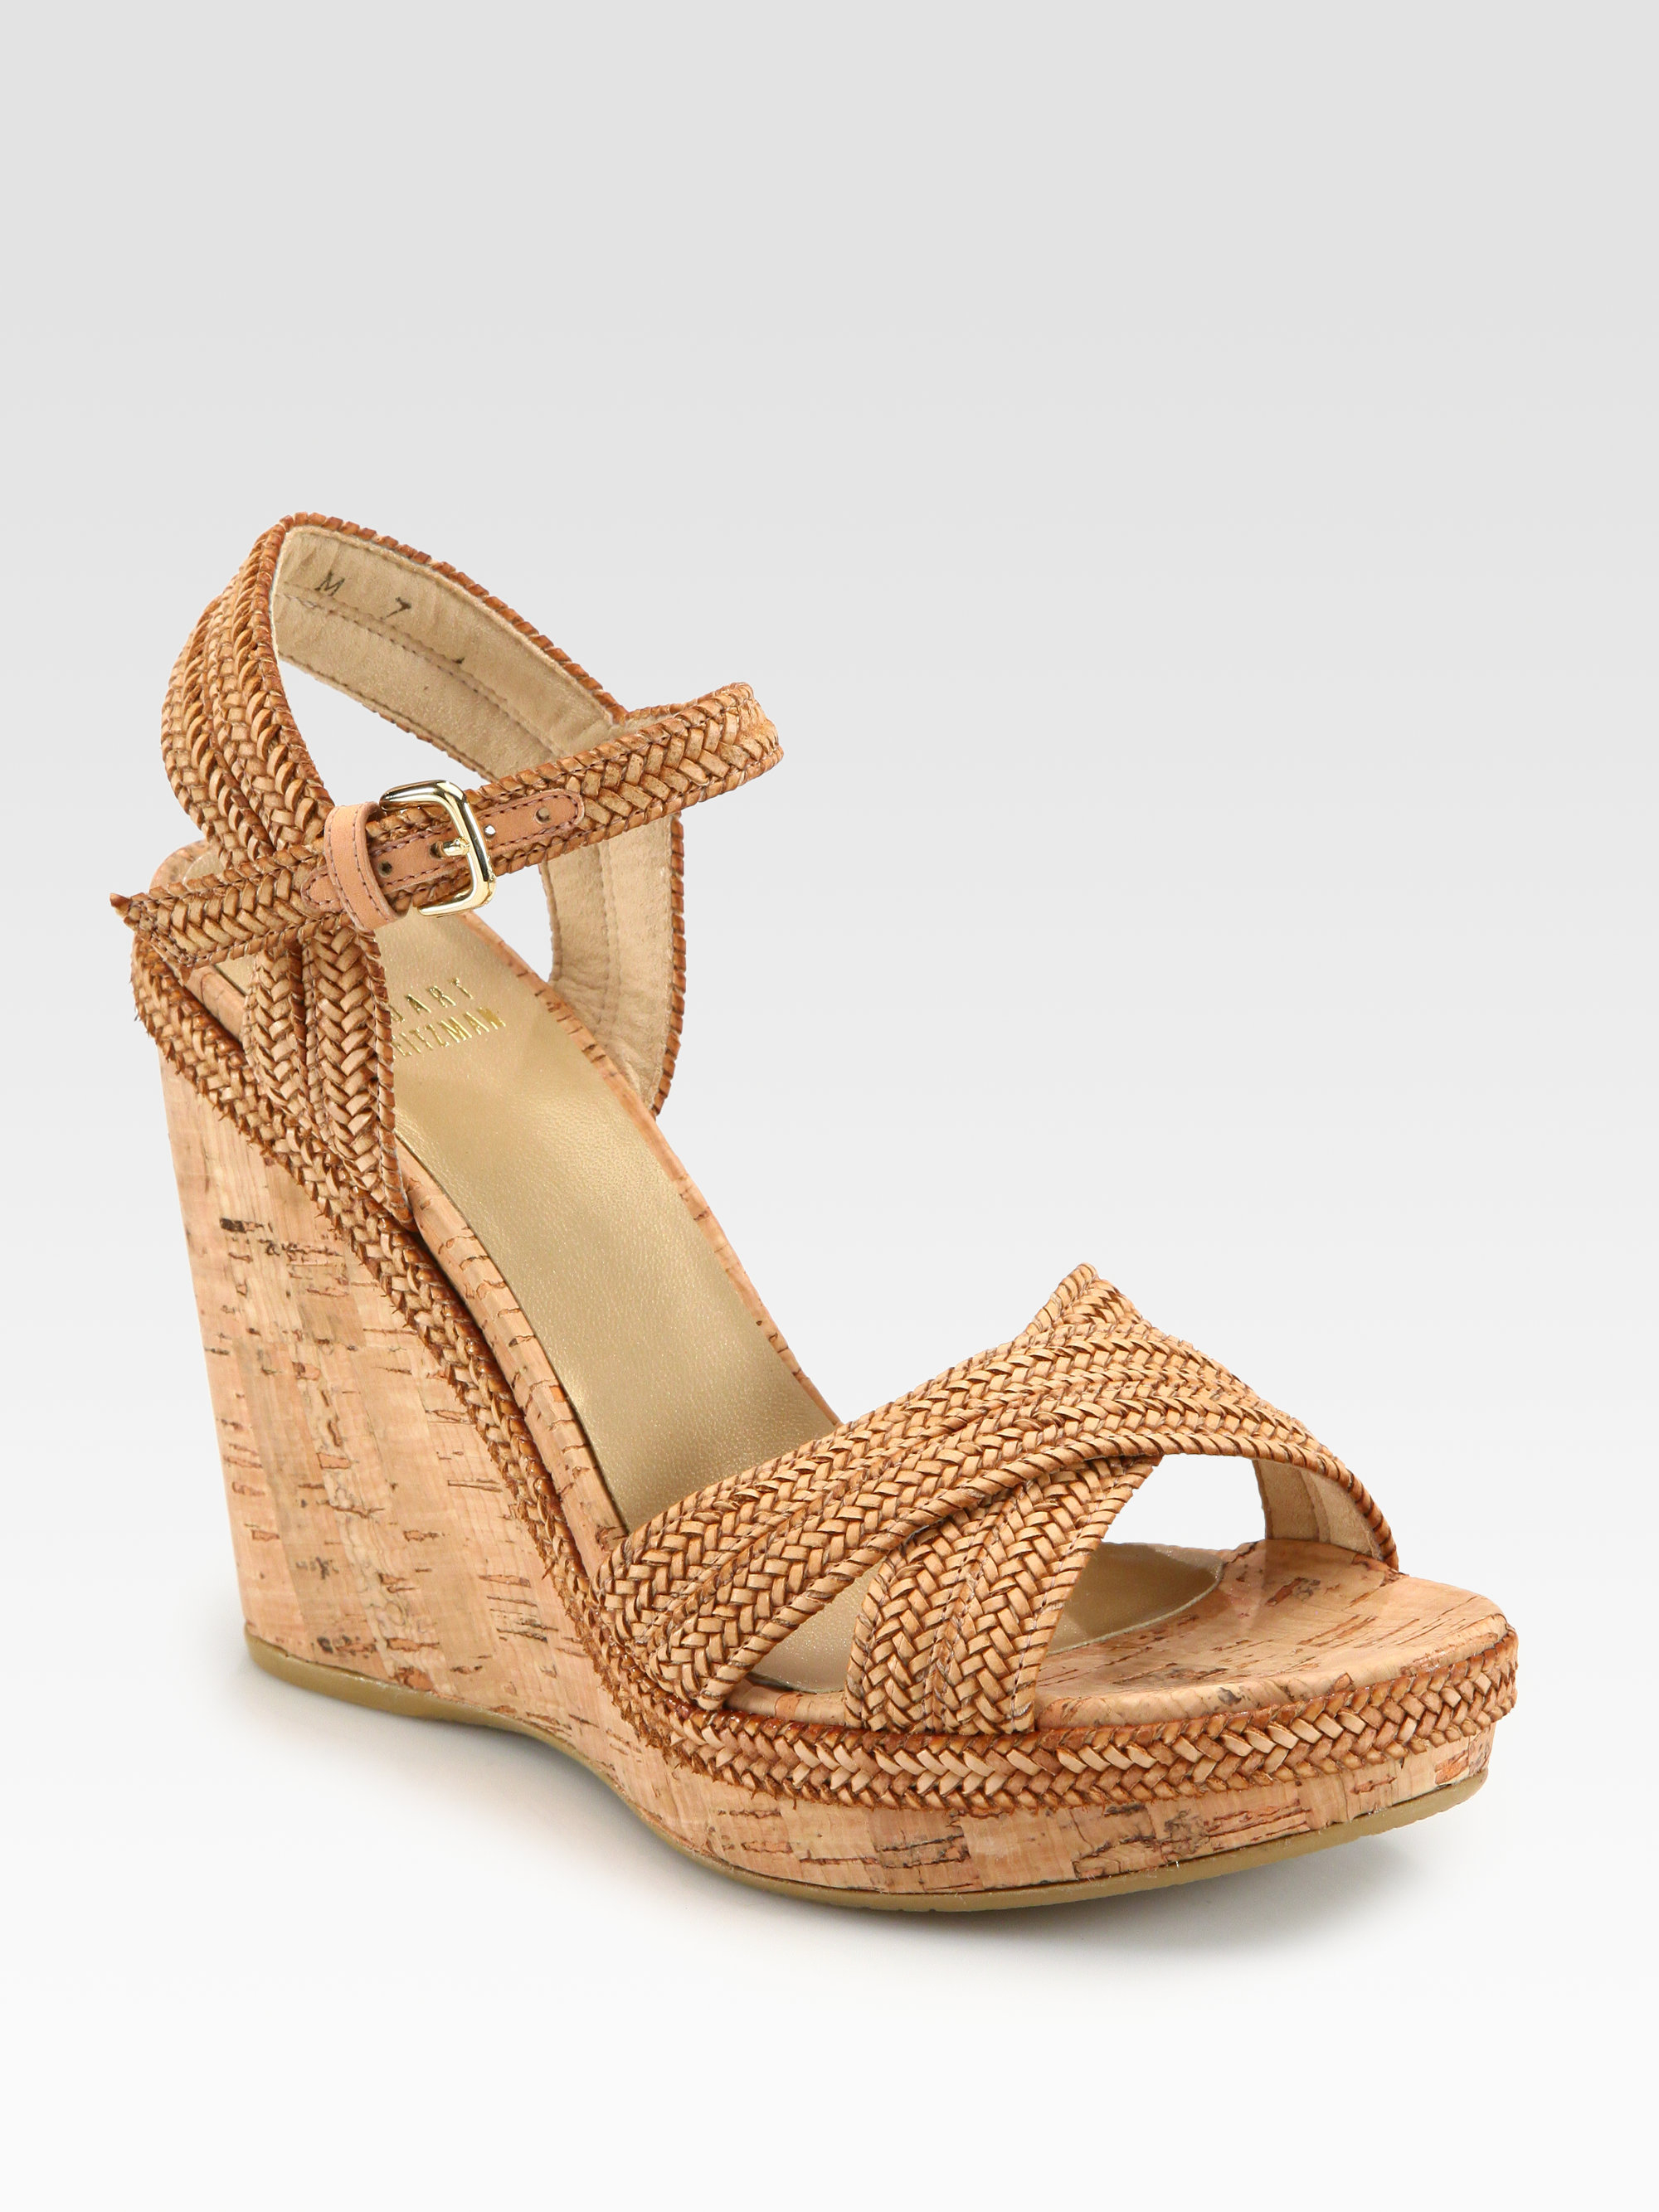 Stuart Weitzman Braided Wedge Sandals authentic cheap online looking for sale online sale supply E2a3GtVTf